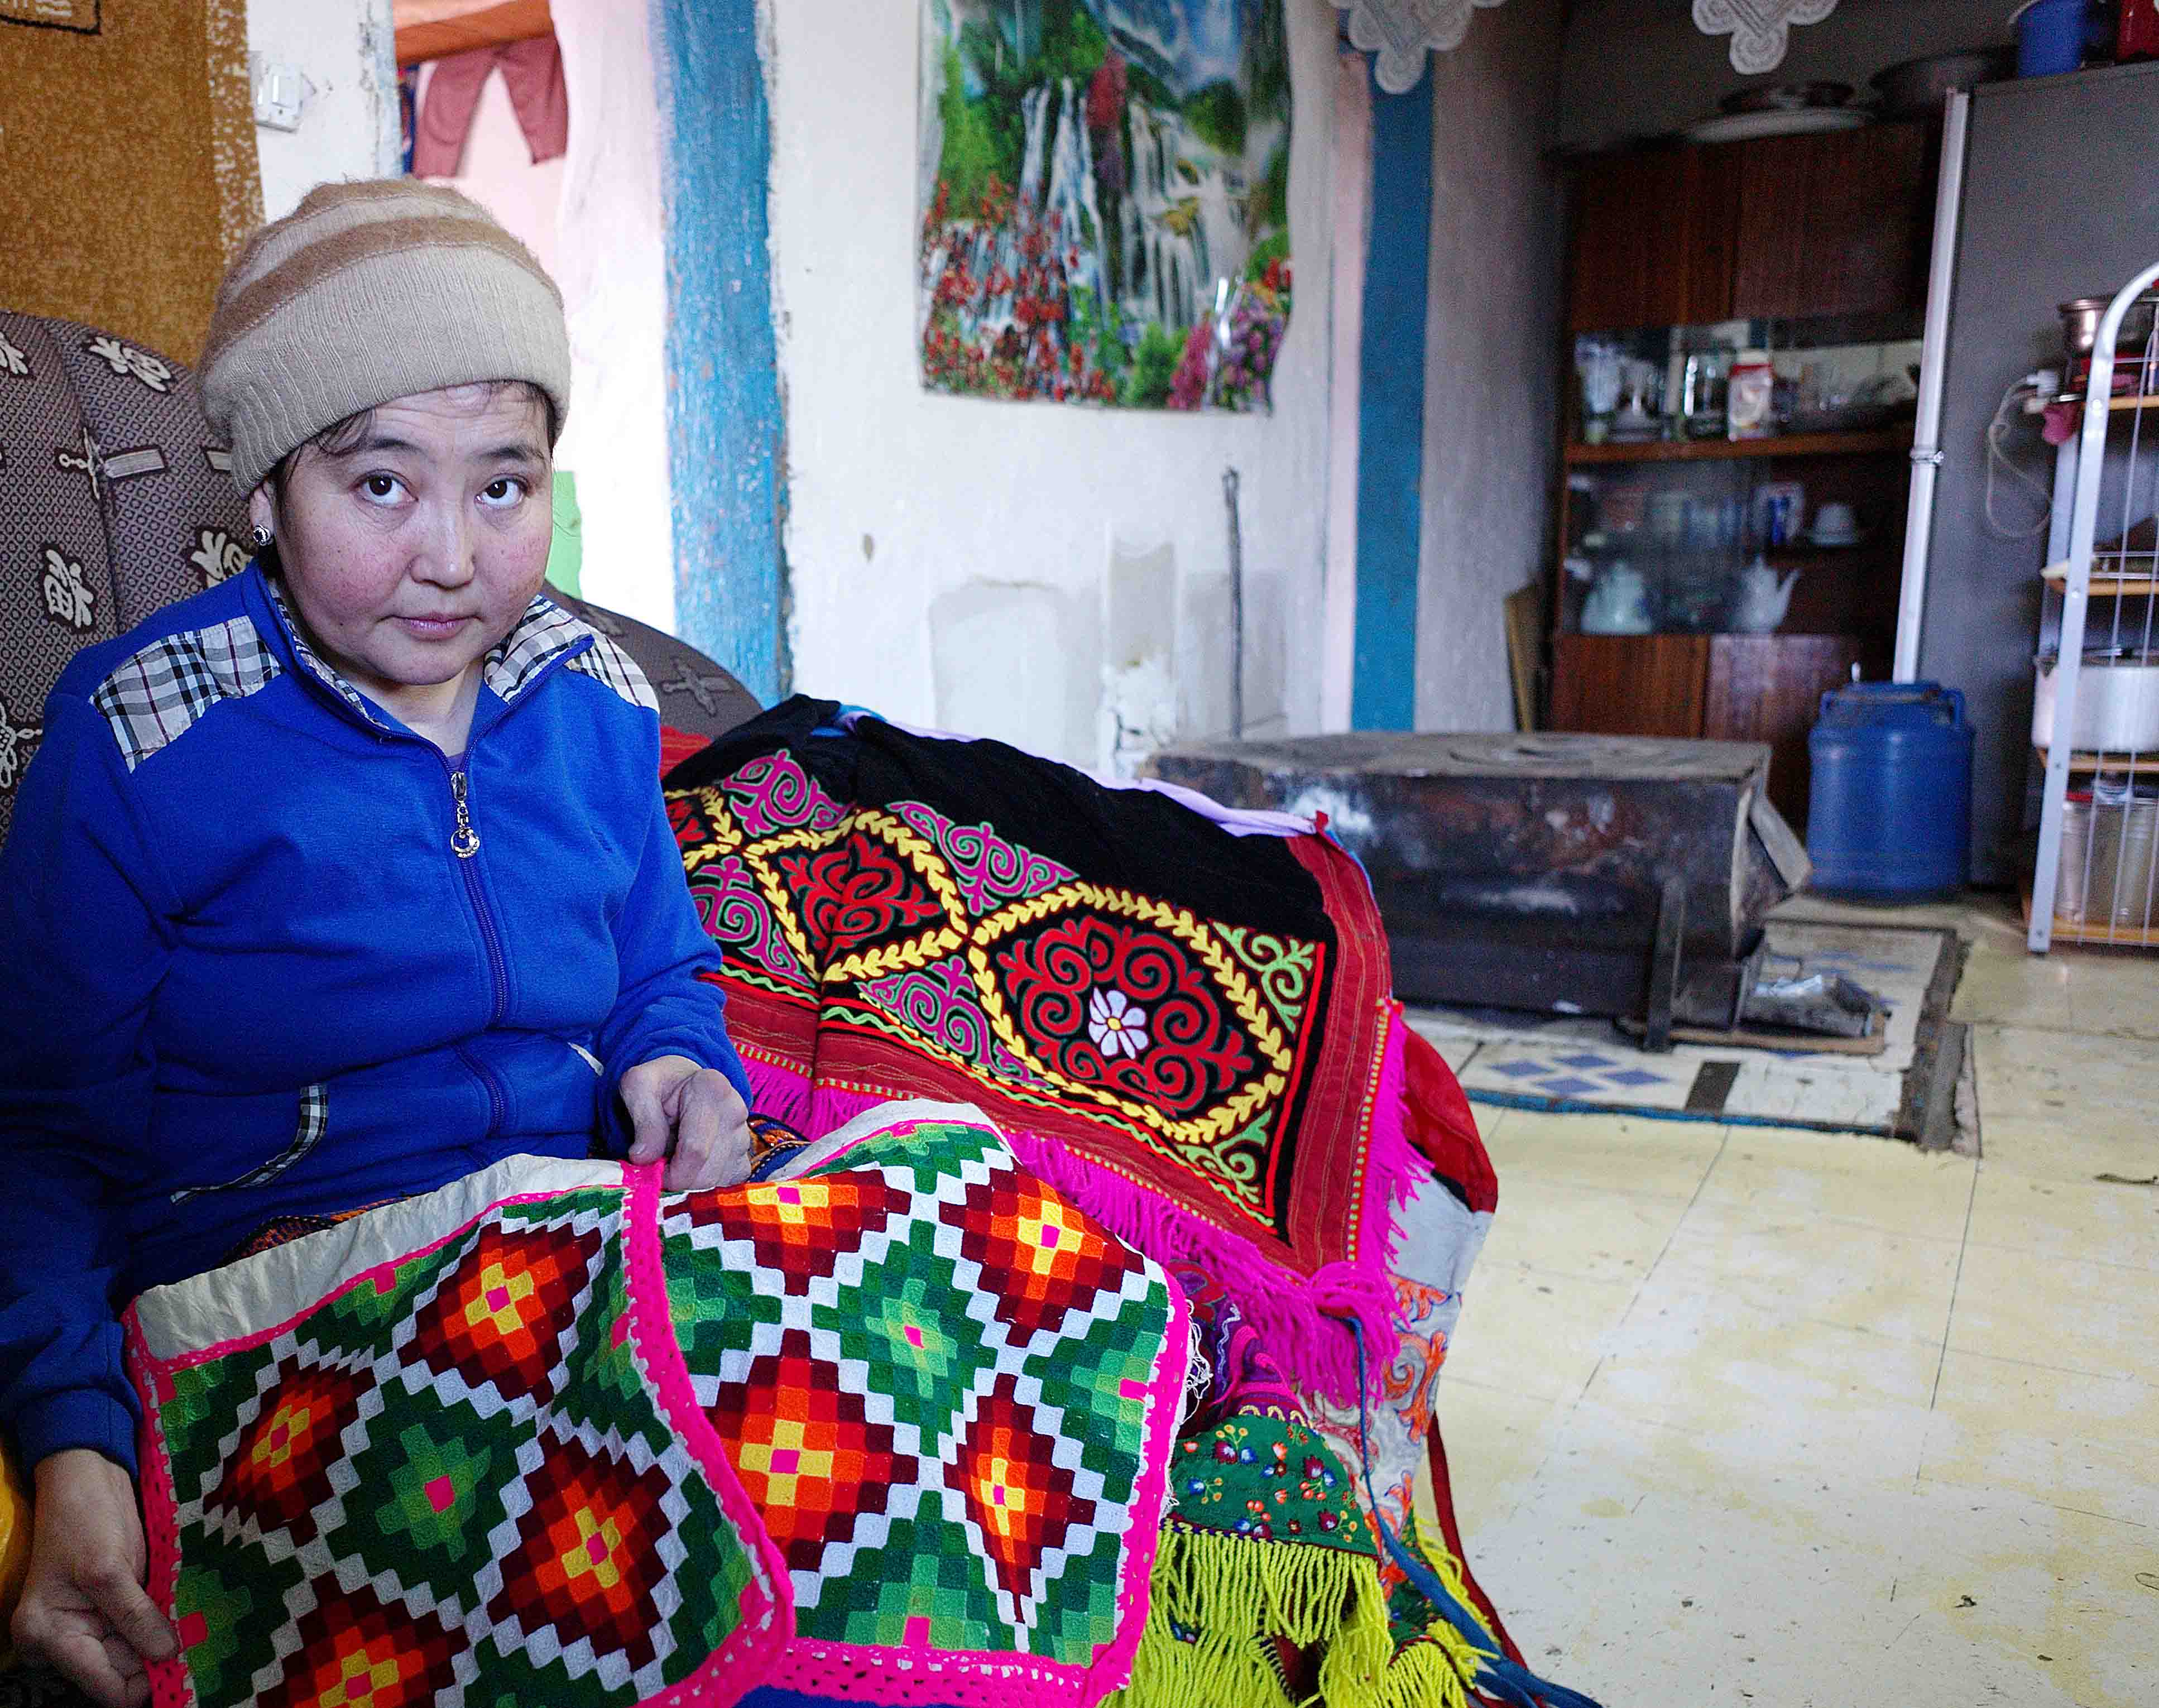 Lena showing her traditional Kazakh needlework skills. She is unable to undertake such work now due to her rheumatoid arthritis.